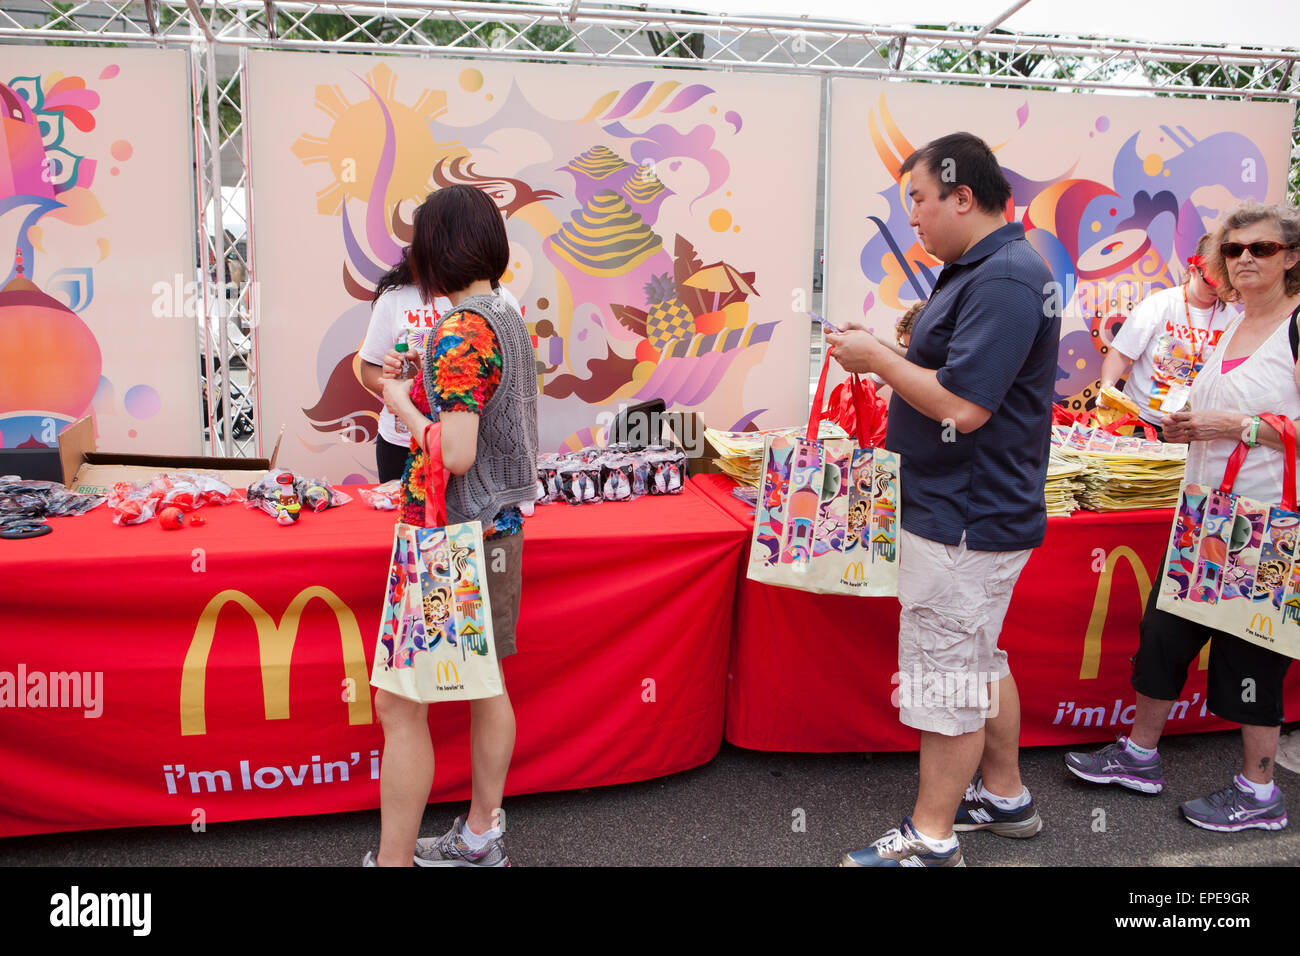 People at a McDonalds promotional booth at an outdoor festival - USA - Stock Image